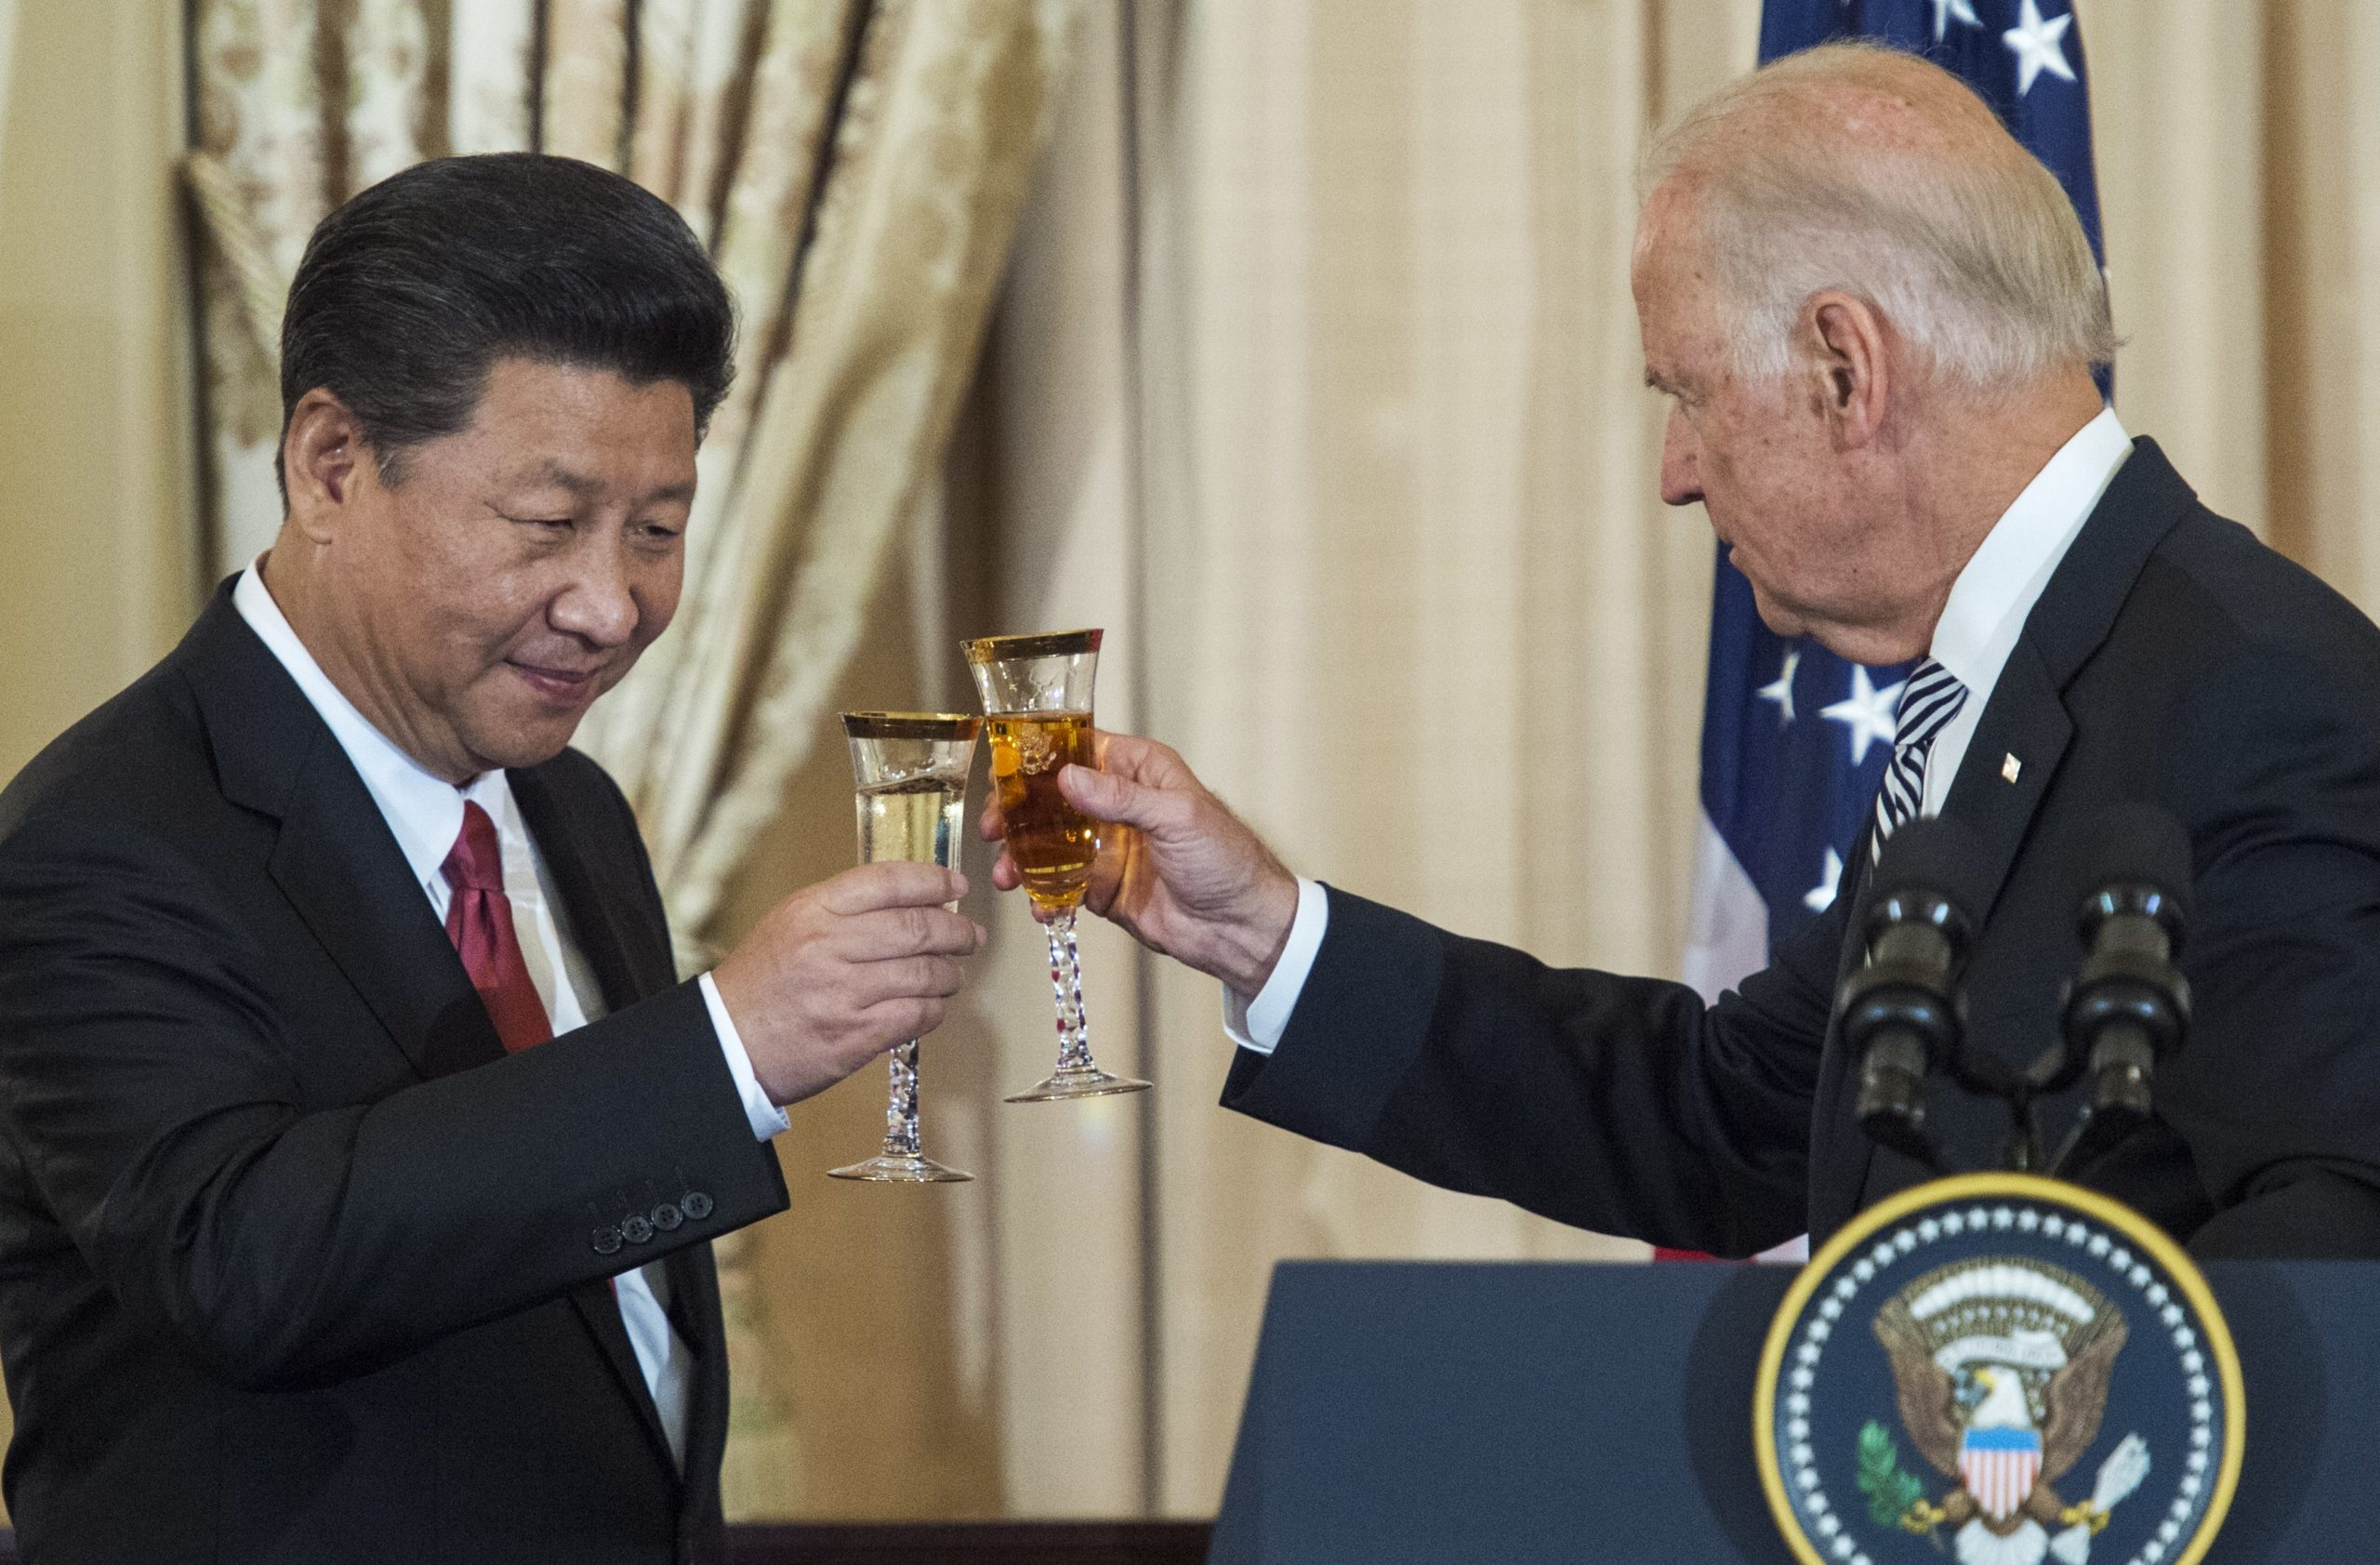 President Joe Biden and Chinese President Xi Jinping toast during a luncheon on Sept. 25, 2015 at the Department of State. (Paul J. Richards/AFP via Getty Images)